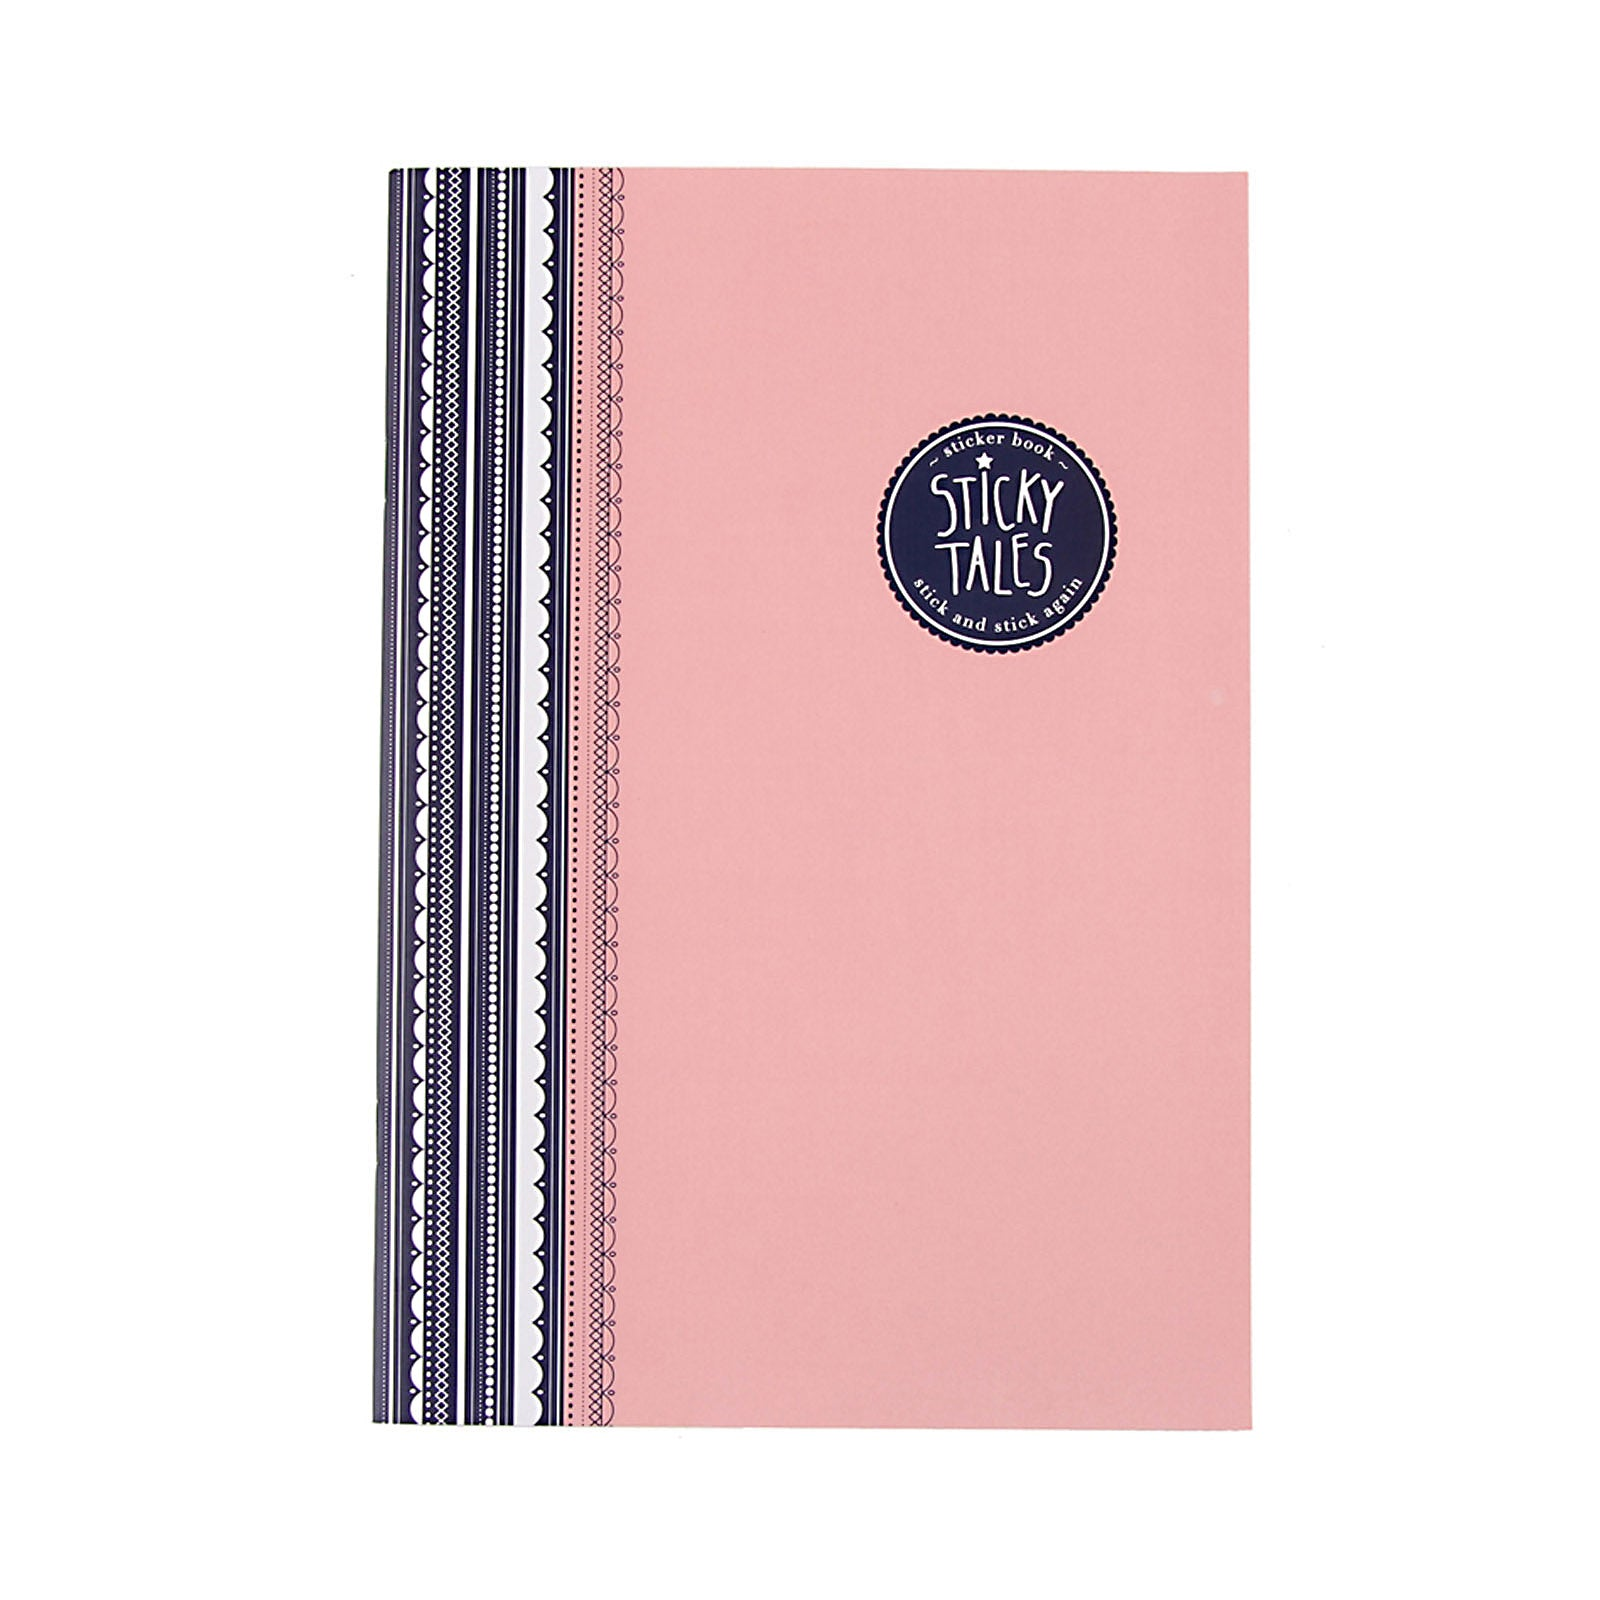 Sticky Tales Set - Pink Ornate Border Sticker Book With 3 Sticker Packs